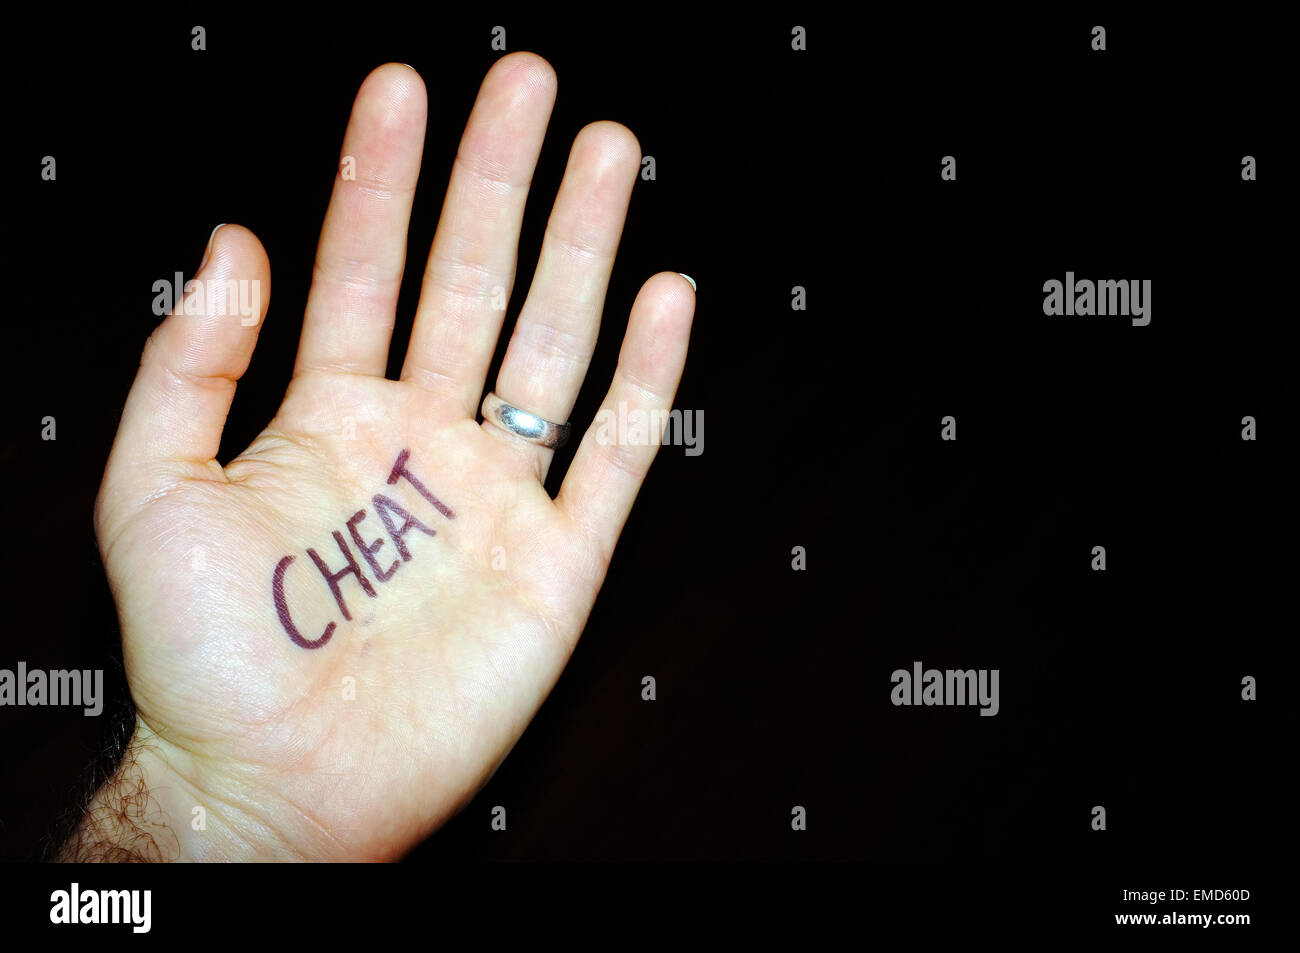 Cheat written on a white man's hand photographed against a black background. - Stock Image